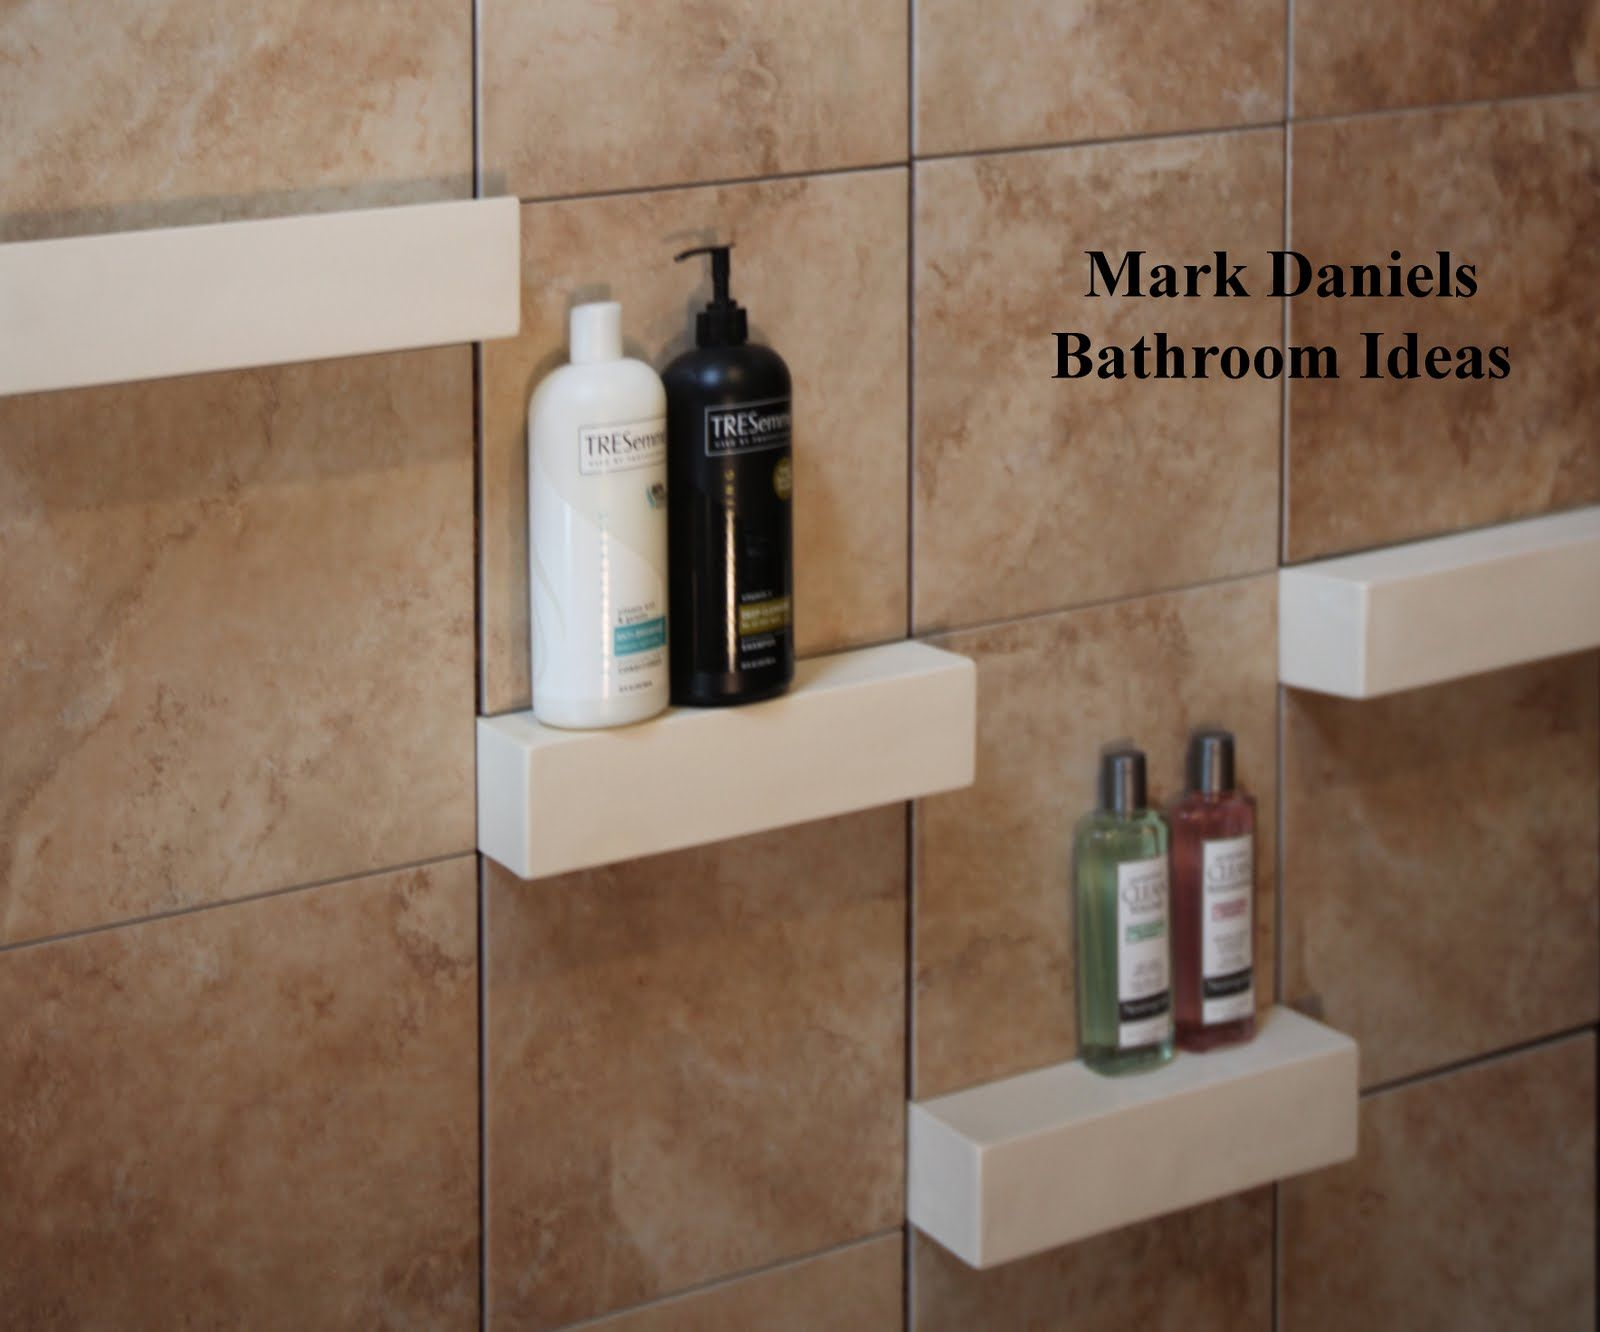 Bathroom Remodeling Design Ideas Tile Shower Shelves